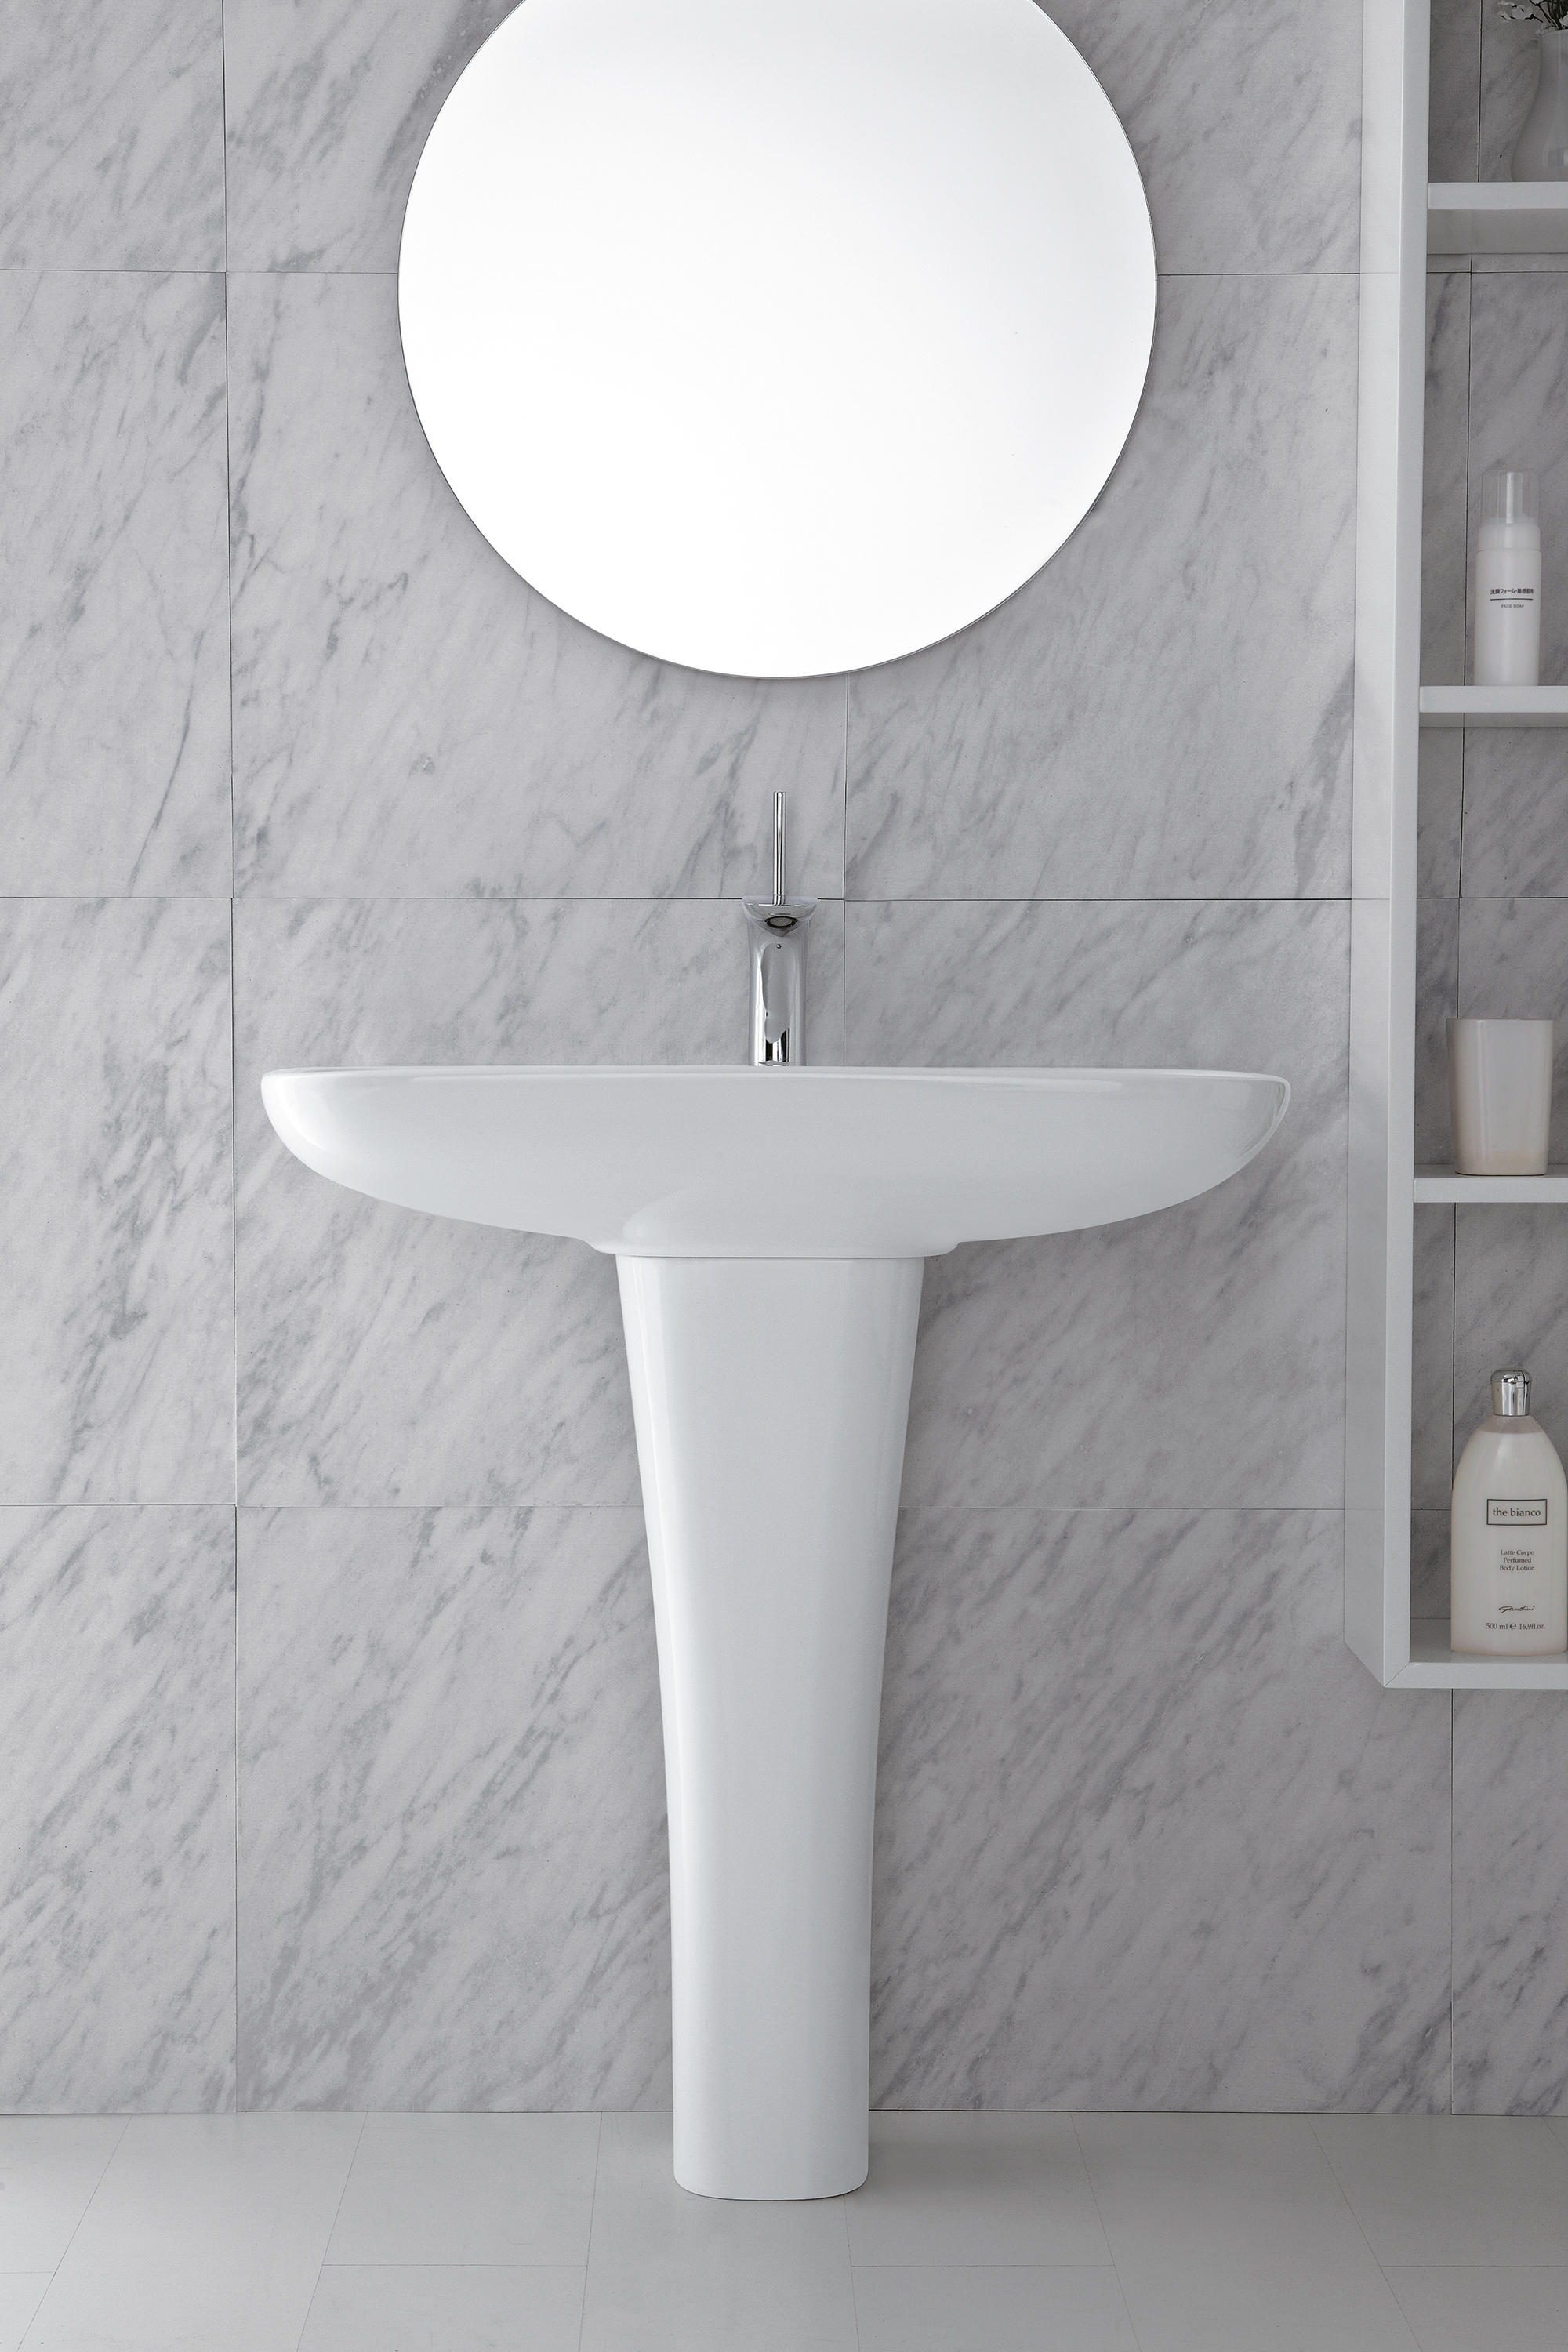 Clear One Hole Wall Hung Bidet Bidets From Olympia Ceramica